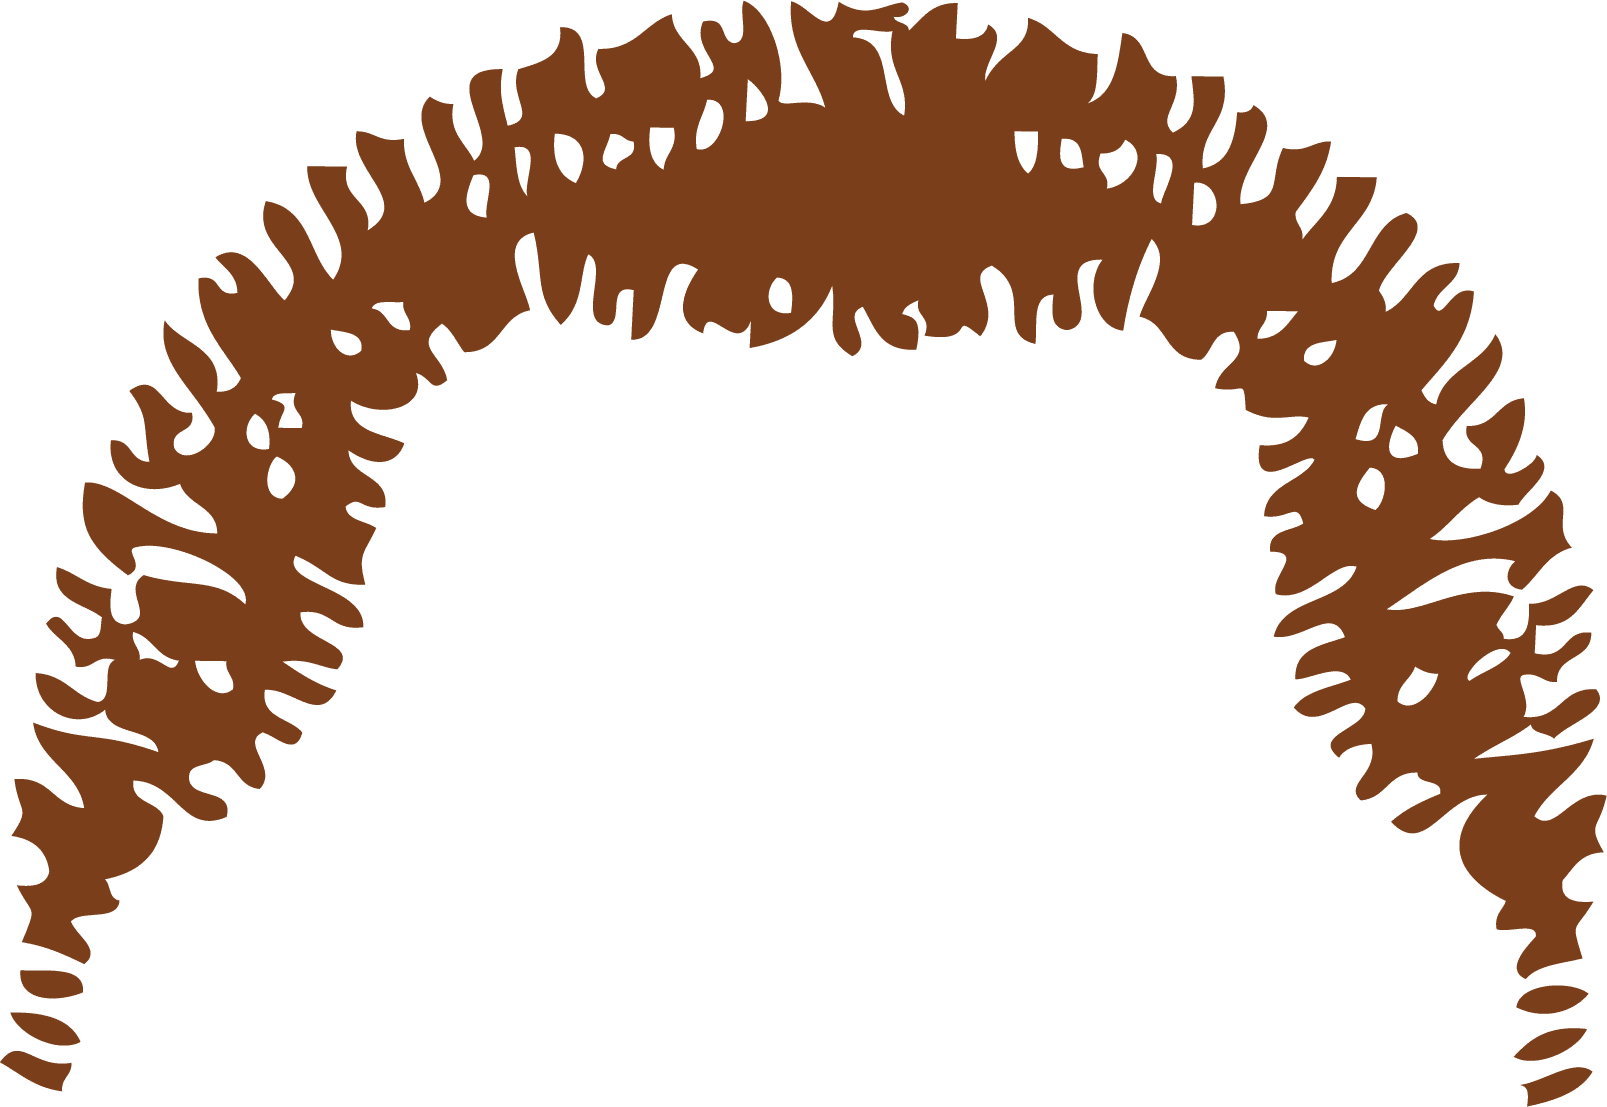 Hair clipart short. Free cliparts download clip